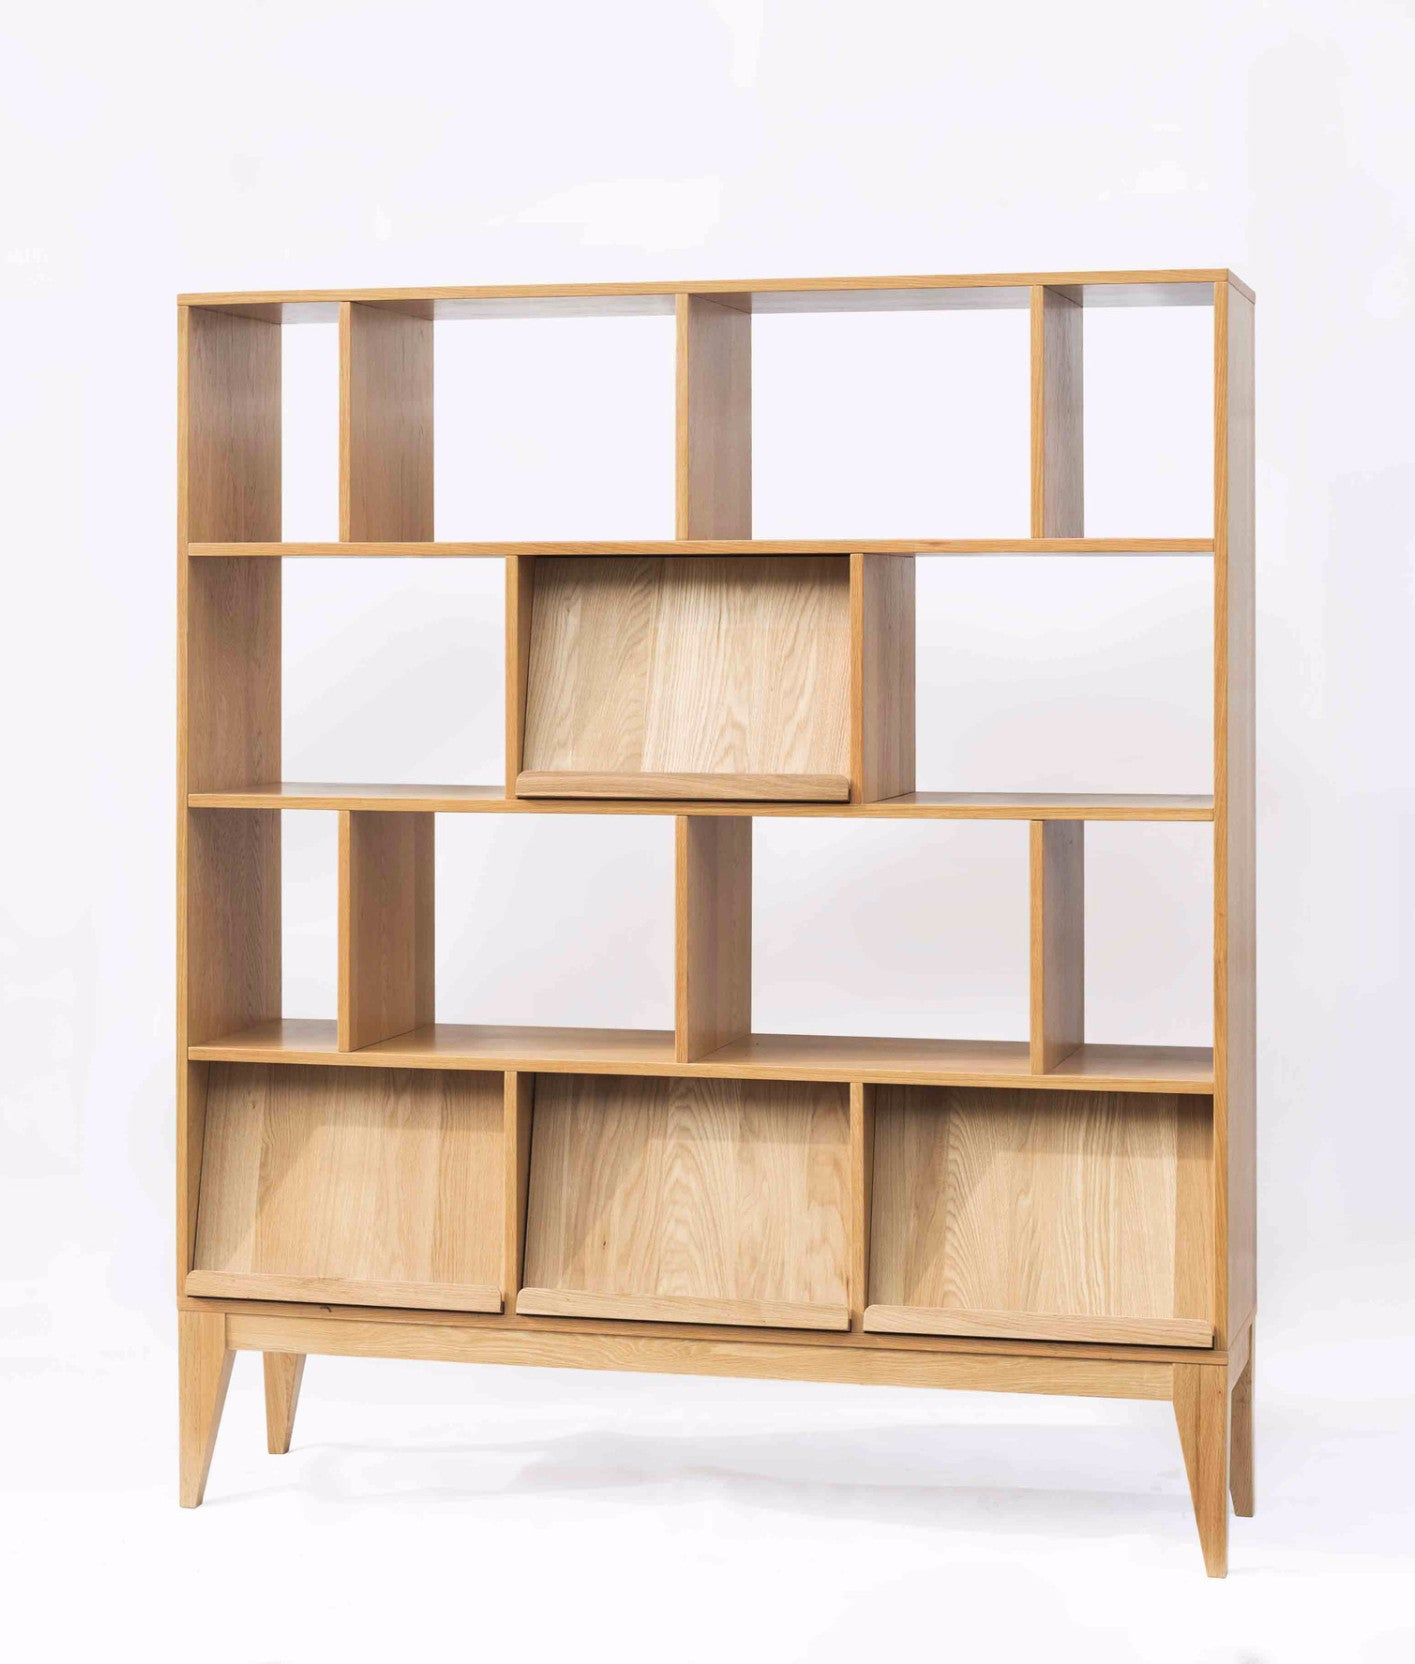 Ziinlife KARLI BOOKSHELF NATURAL OAK